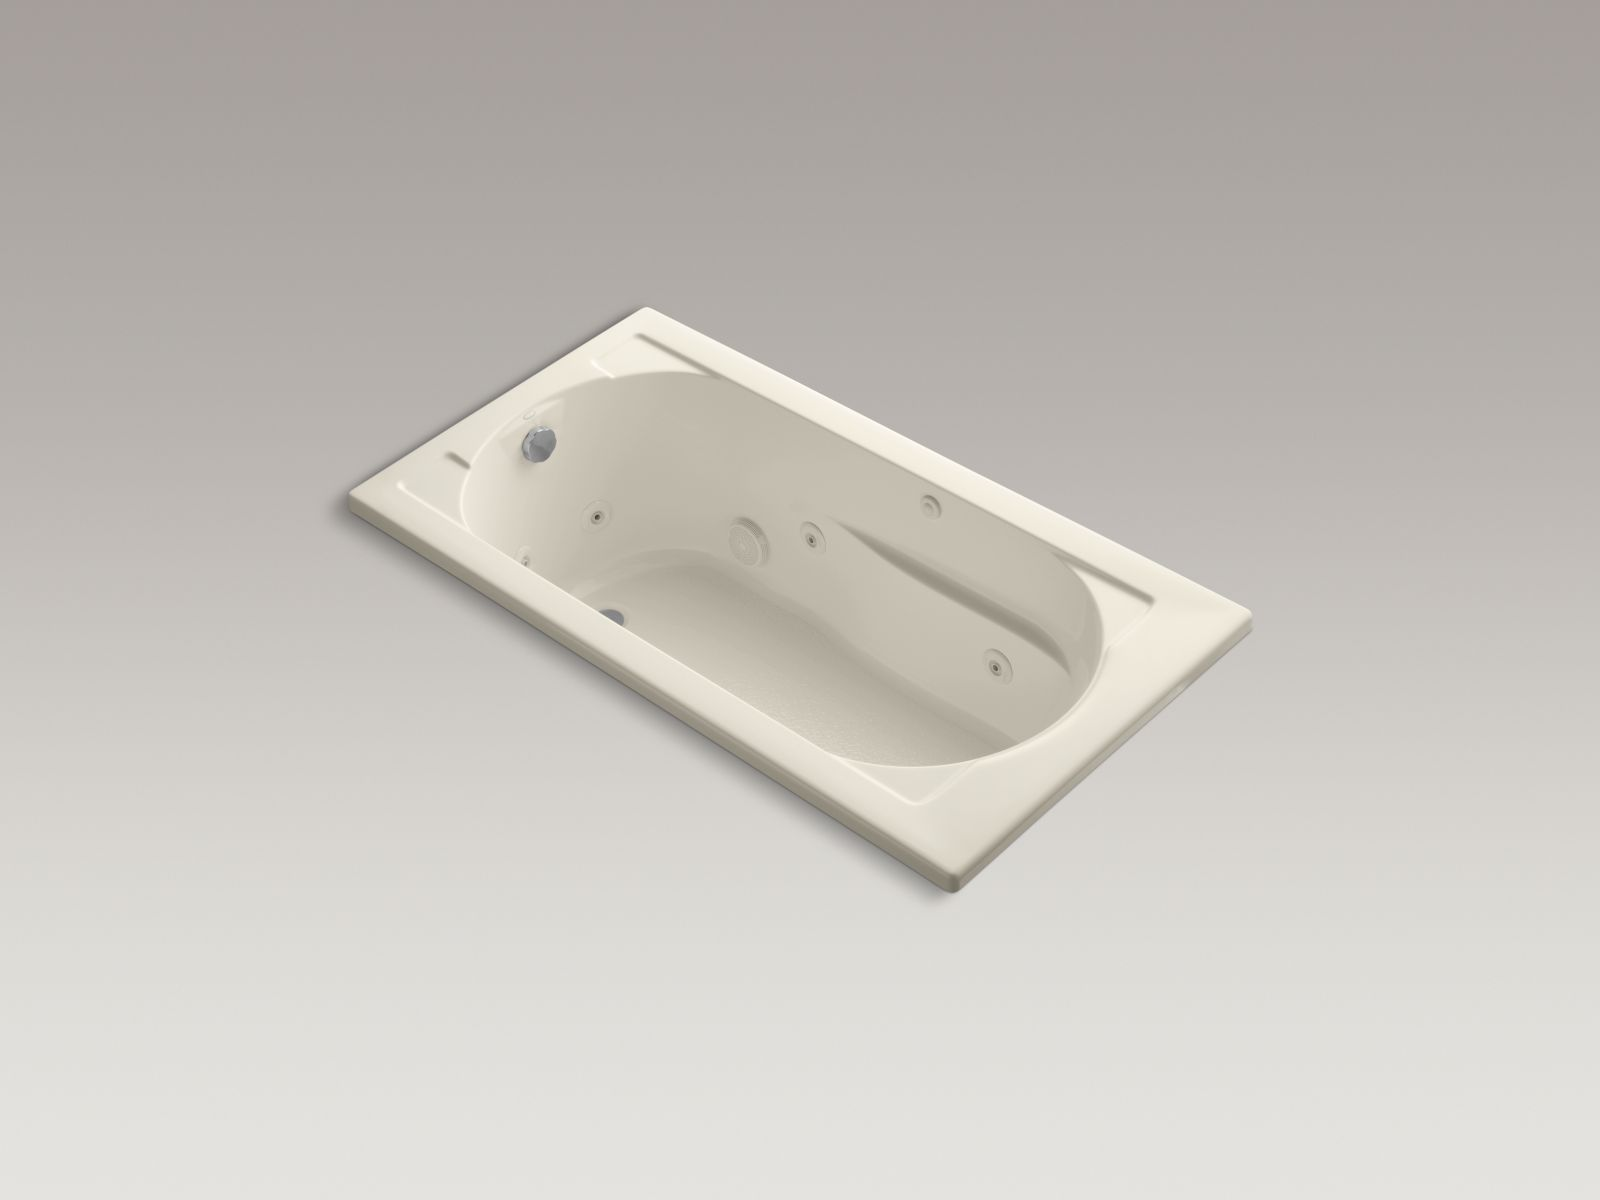 Kohler K-1357-47 Devonshire 5' Whirlpool with Reversible Drain Almond